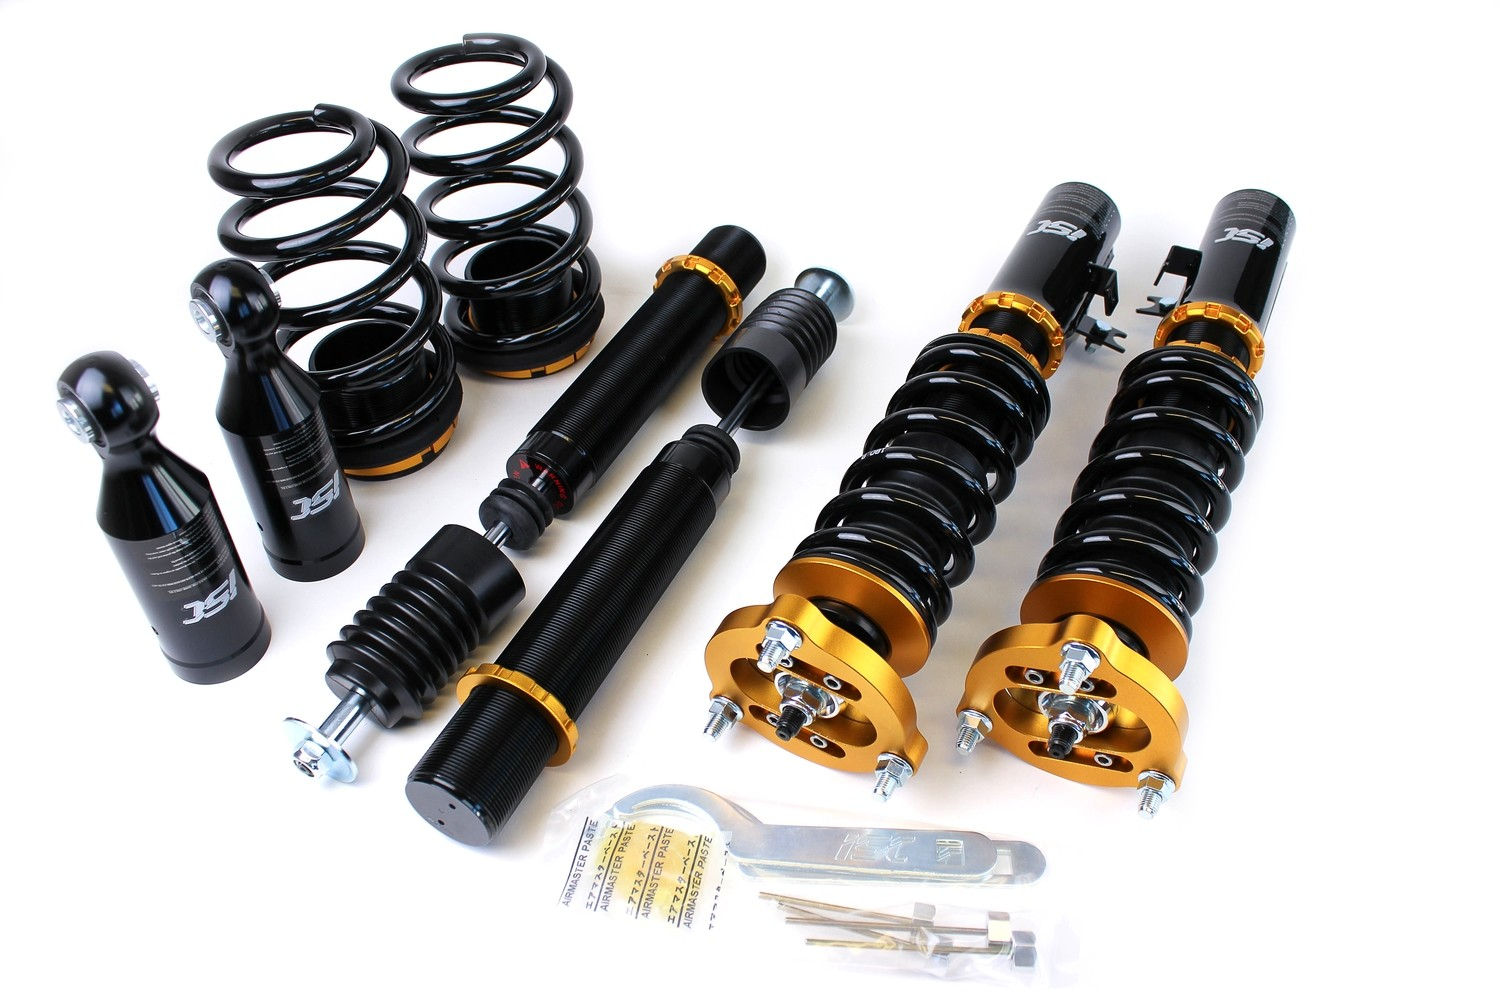 CLEARANCE Honda Civic (06-11) ISC N1 Coilover Suspension - Street Sport Valving